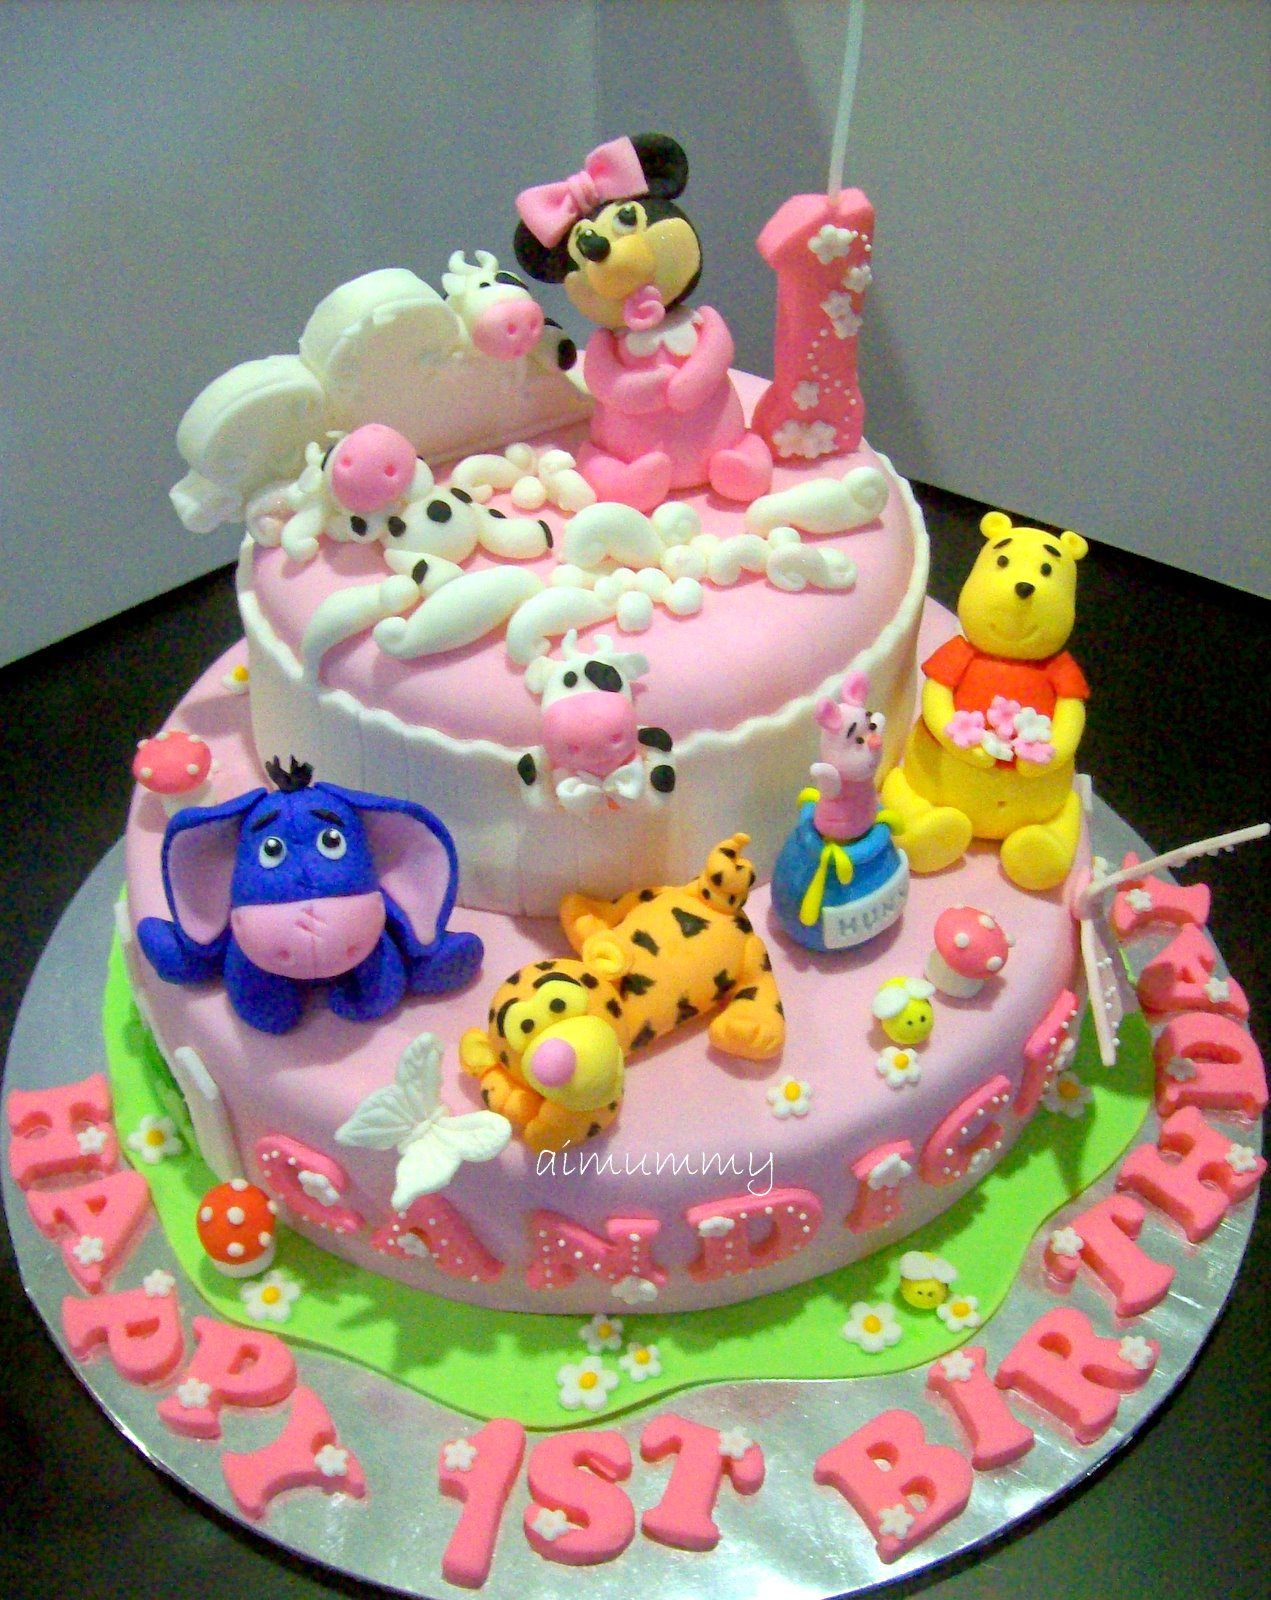 Cake Designs And Images : AiMummy: Another sweet pooh & minnie cake